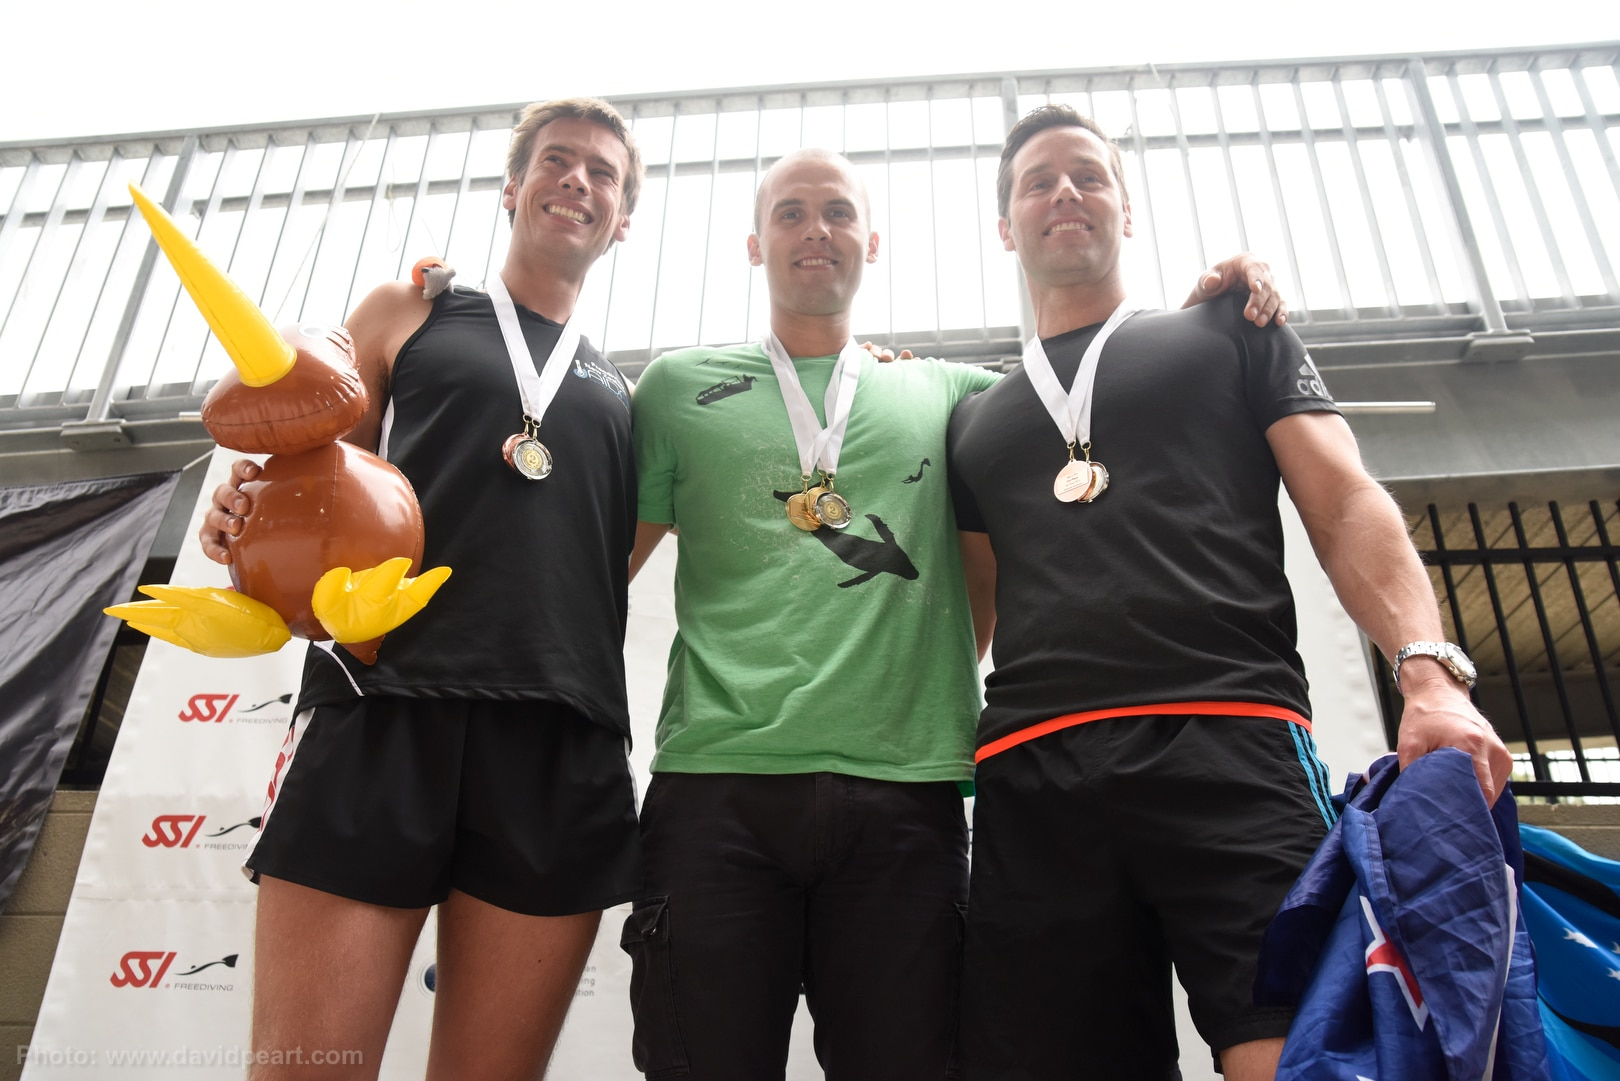 Chris Marshall, Alexey Molchonov, Ant Williams receiving their medals! Photo by Davd Peart